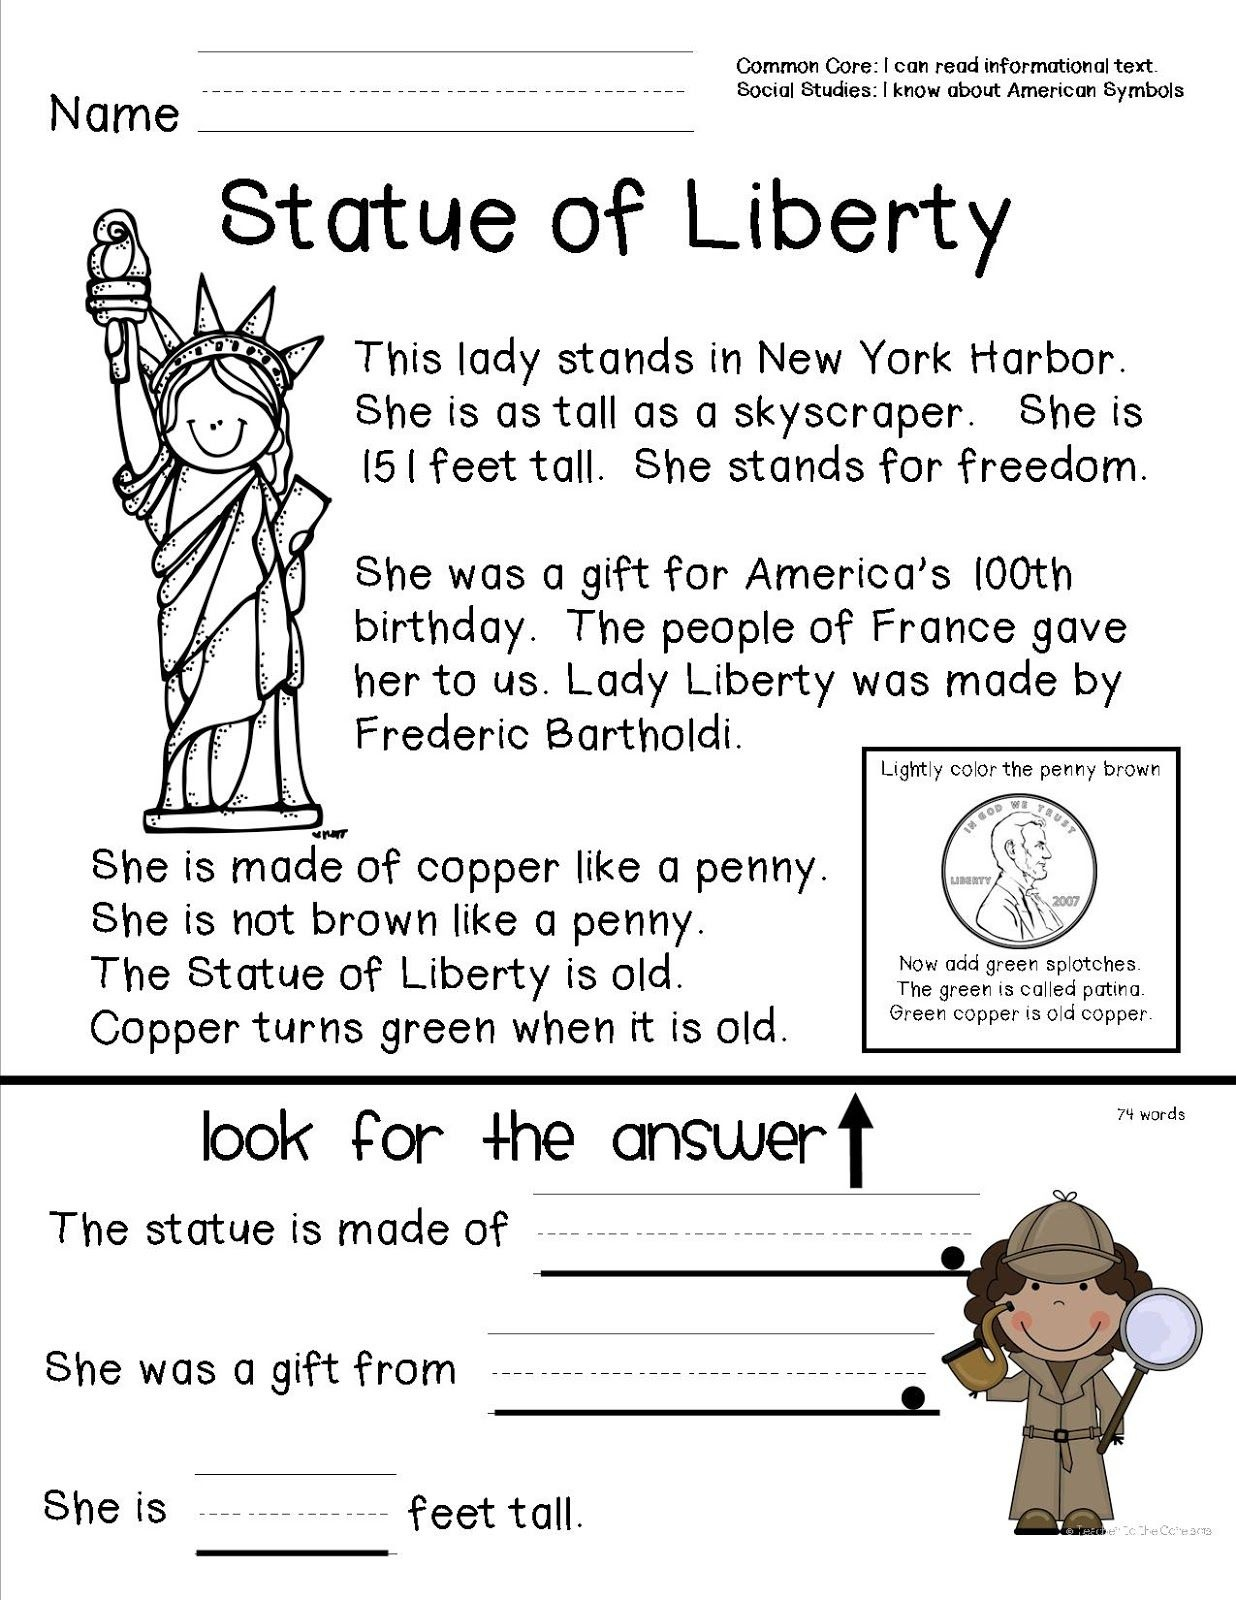 Reading Comprehension Sheet About The Statue Of Liberty For Primary - Free Printable Reading Comprehension Worksheets For Kindergarten